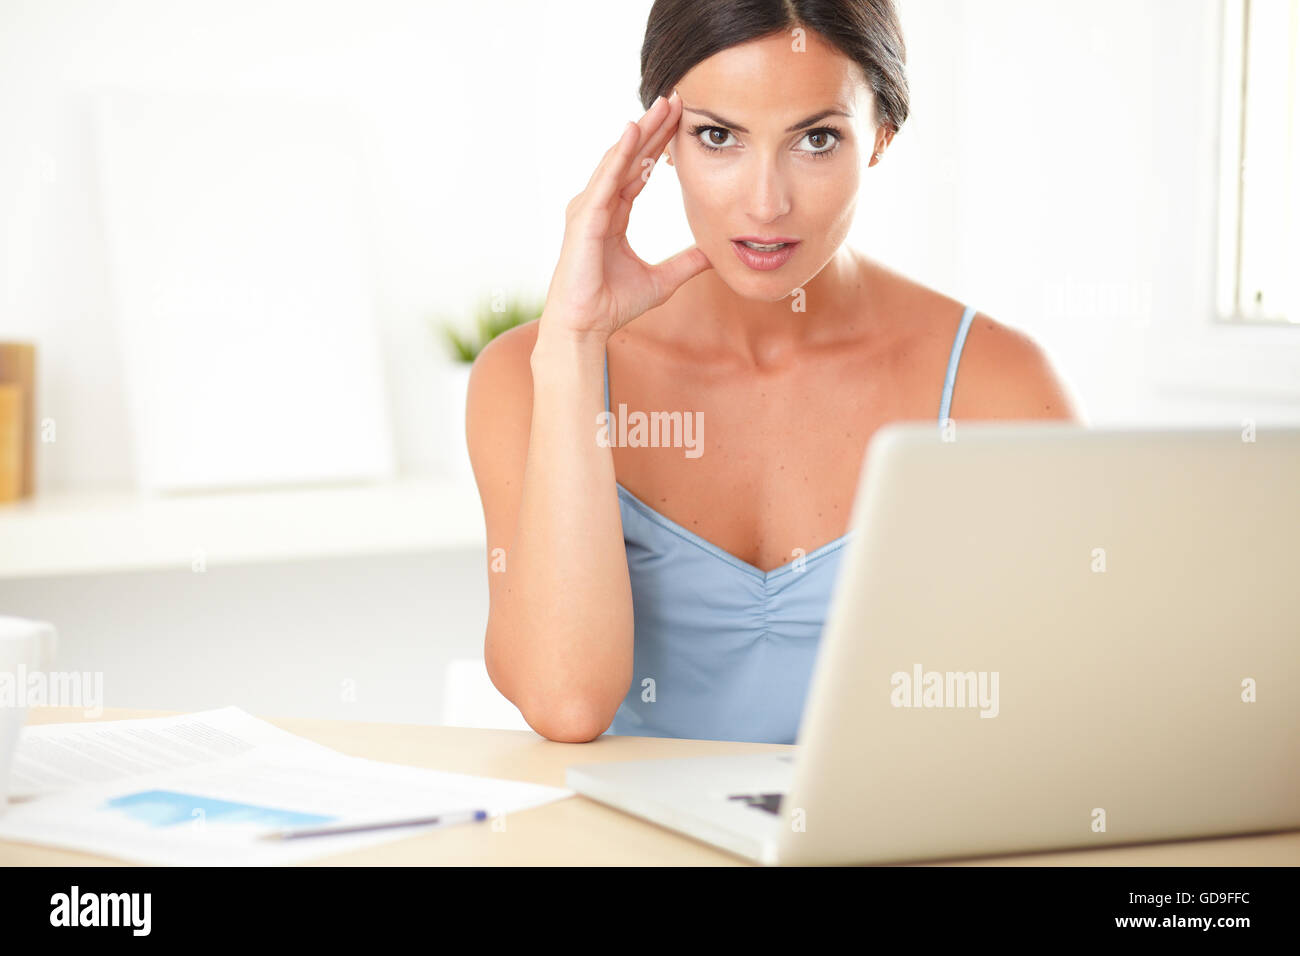 Stylish female in blue blouse feeling tension at work - Stock Image